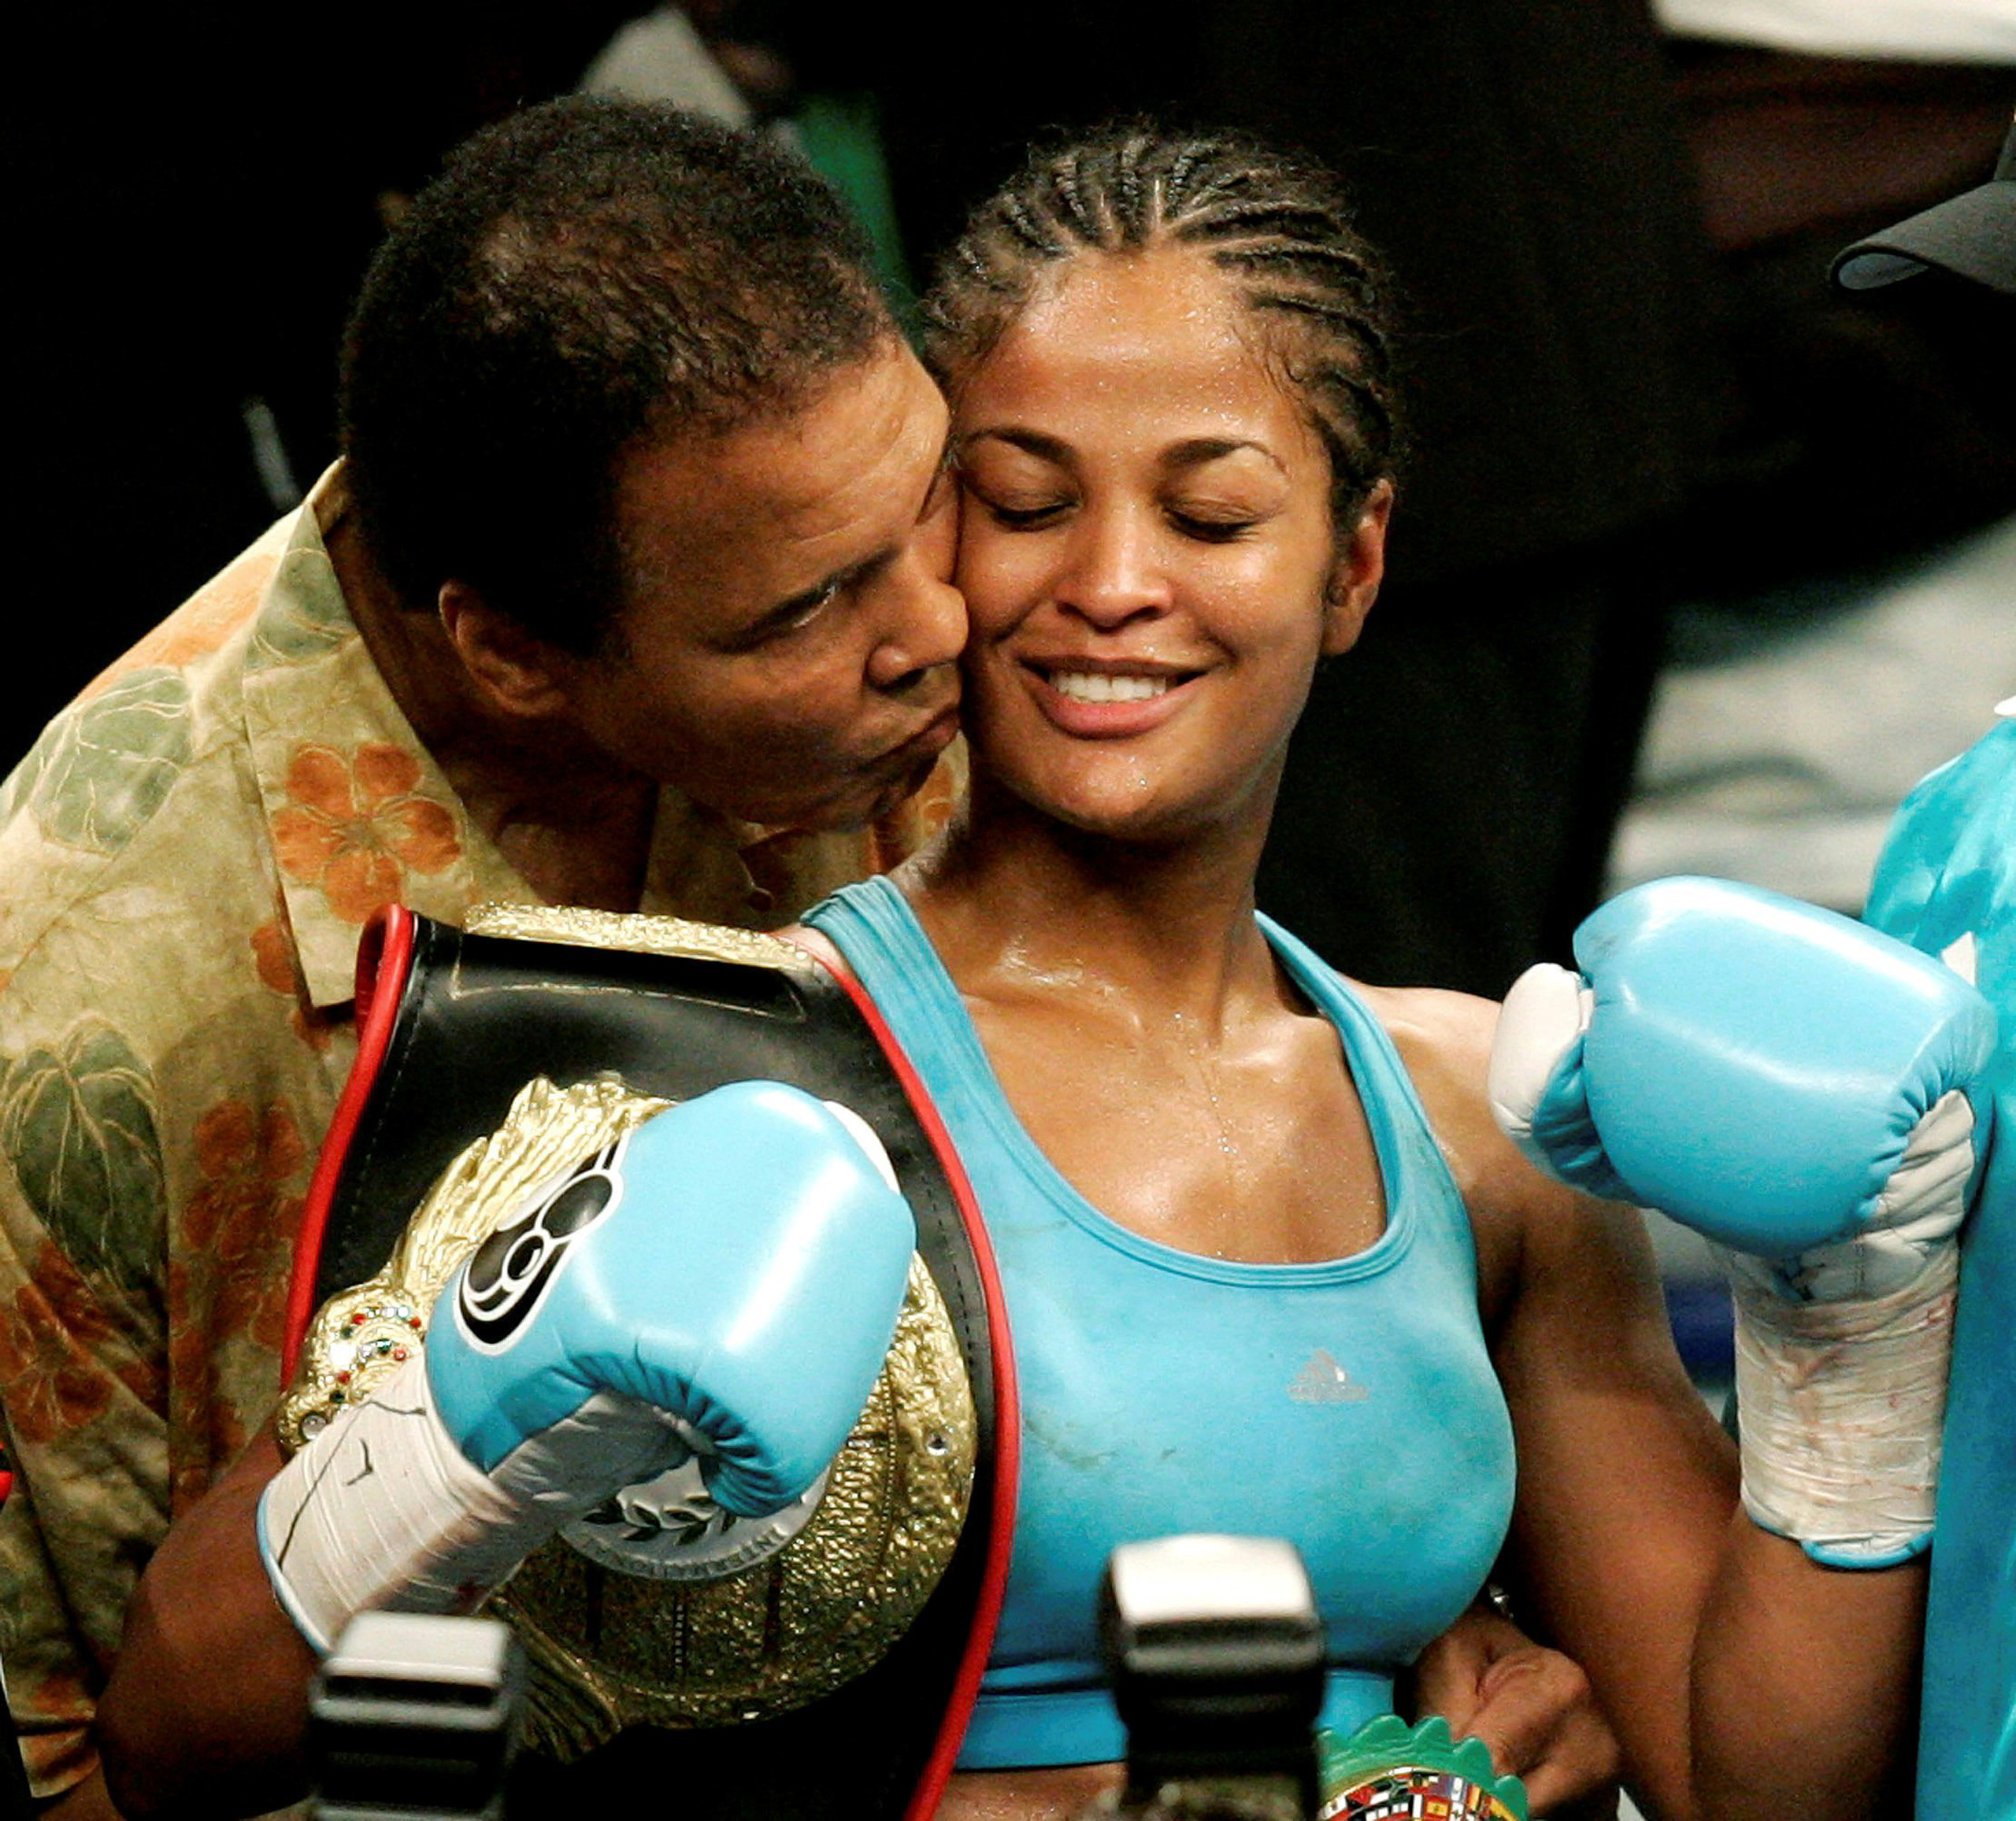 Laila Ali is kissed by her father, boxing great Muhammad Ali, at the MCI Center in Washington D.C., June 11, 2005.